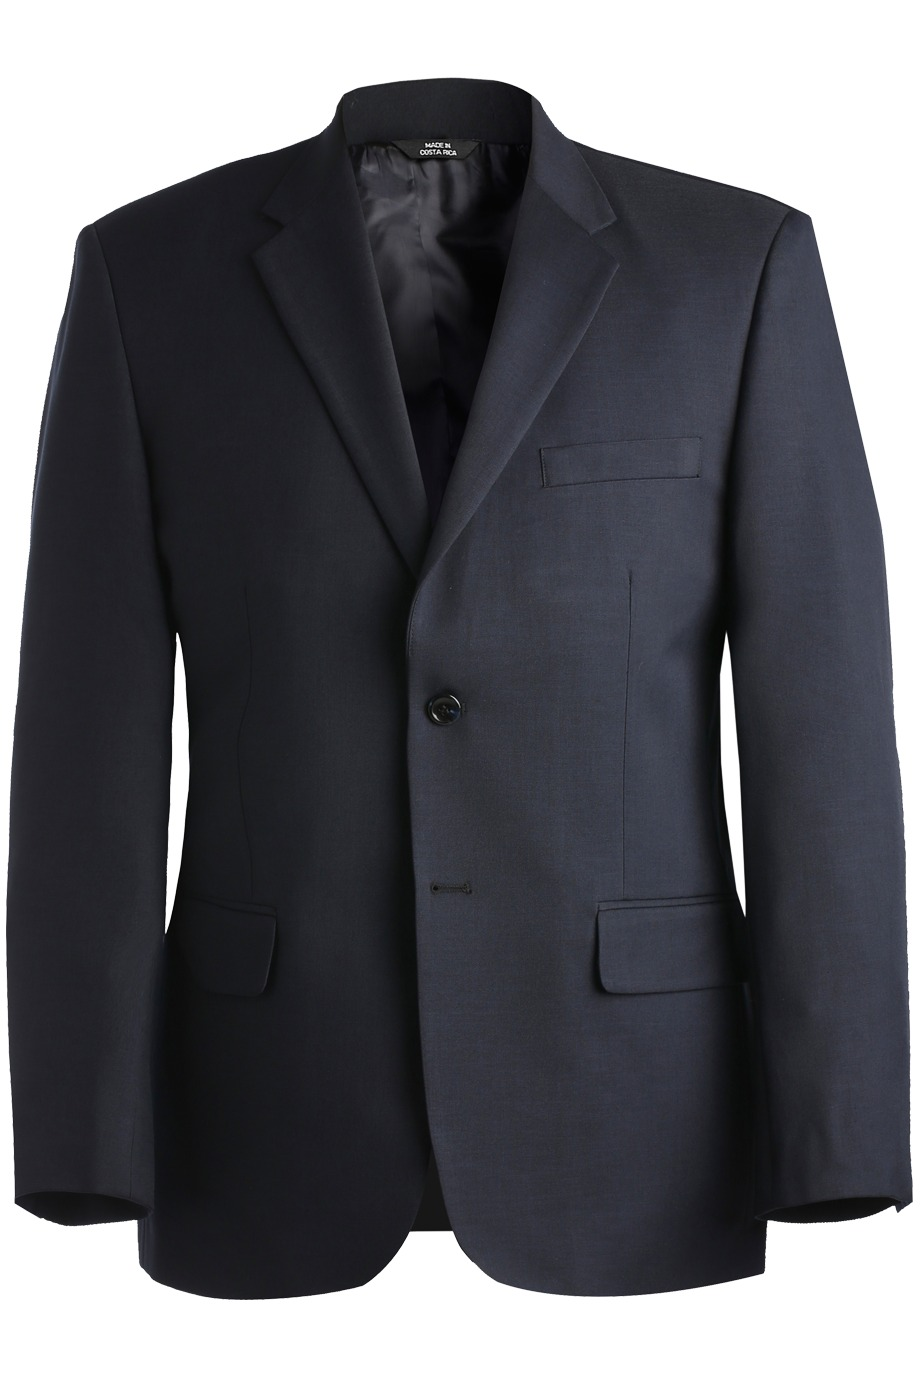 Edwards Garment 3525 - Synergy Washable Coat